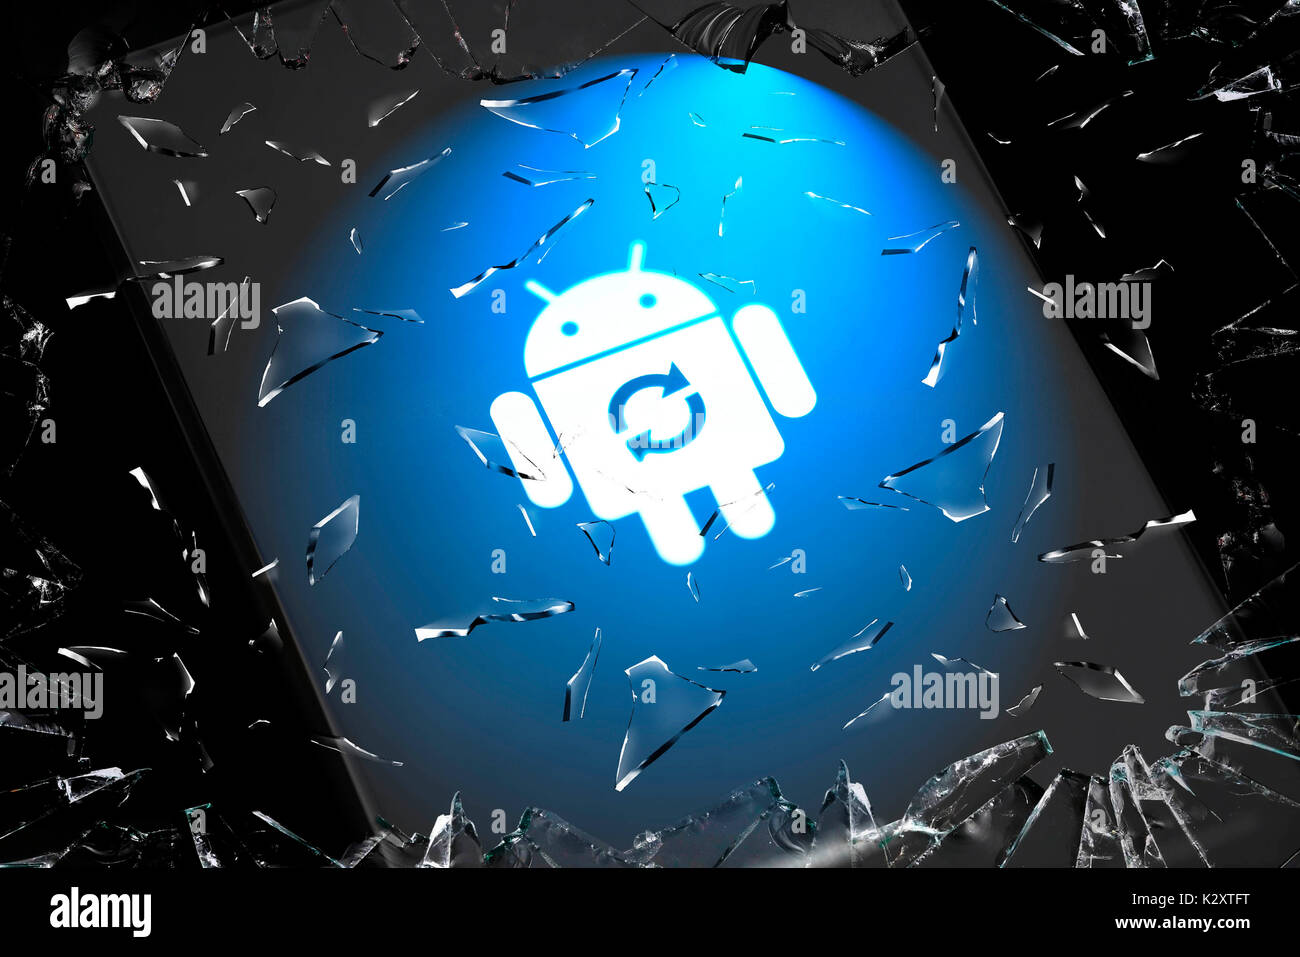 Android operating system and shattering mobile phone display, Android-Betriebssystem und zerspringendes Handy-Display - Stock Image